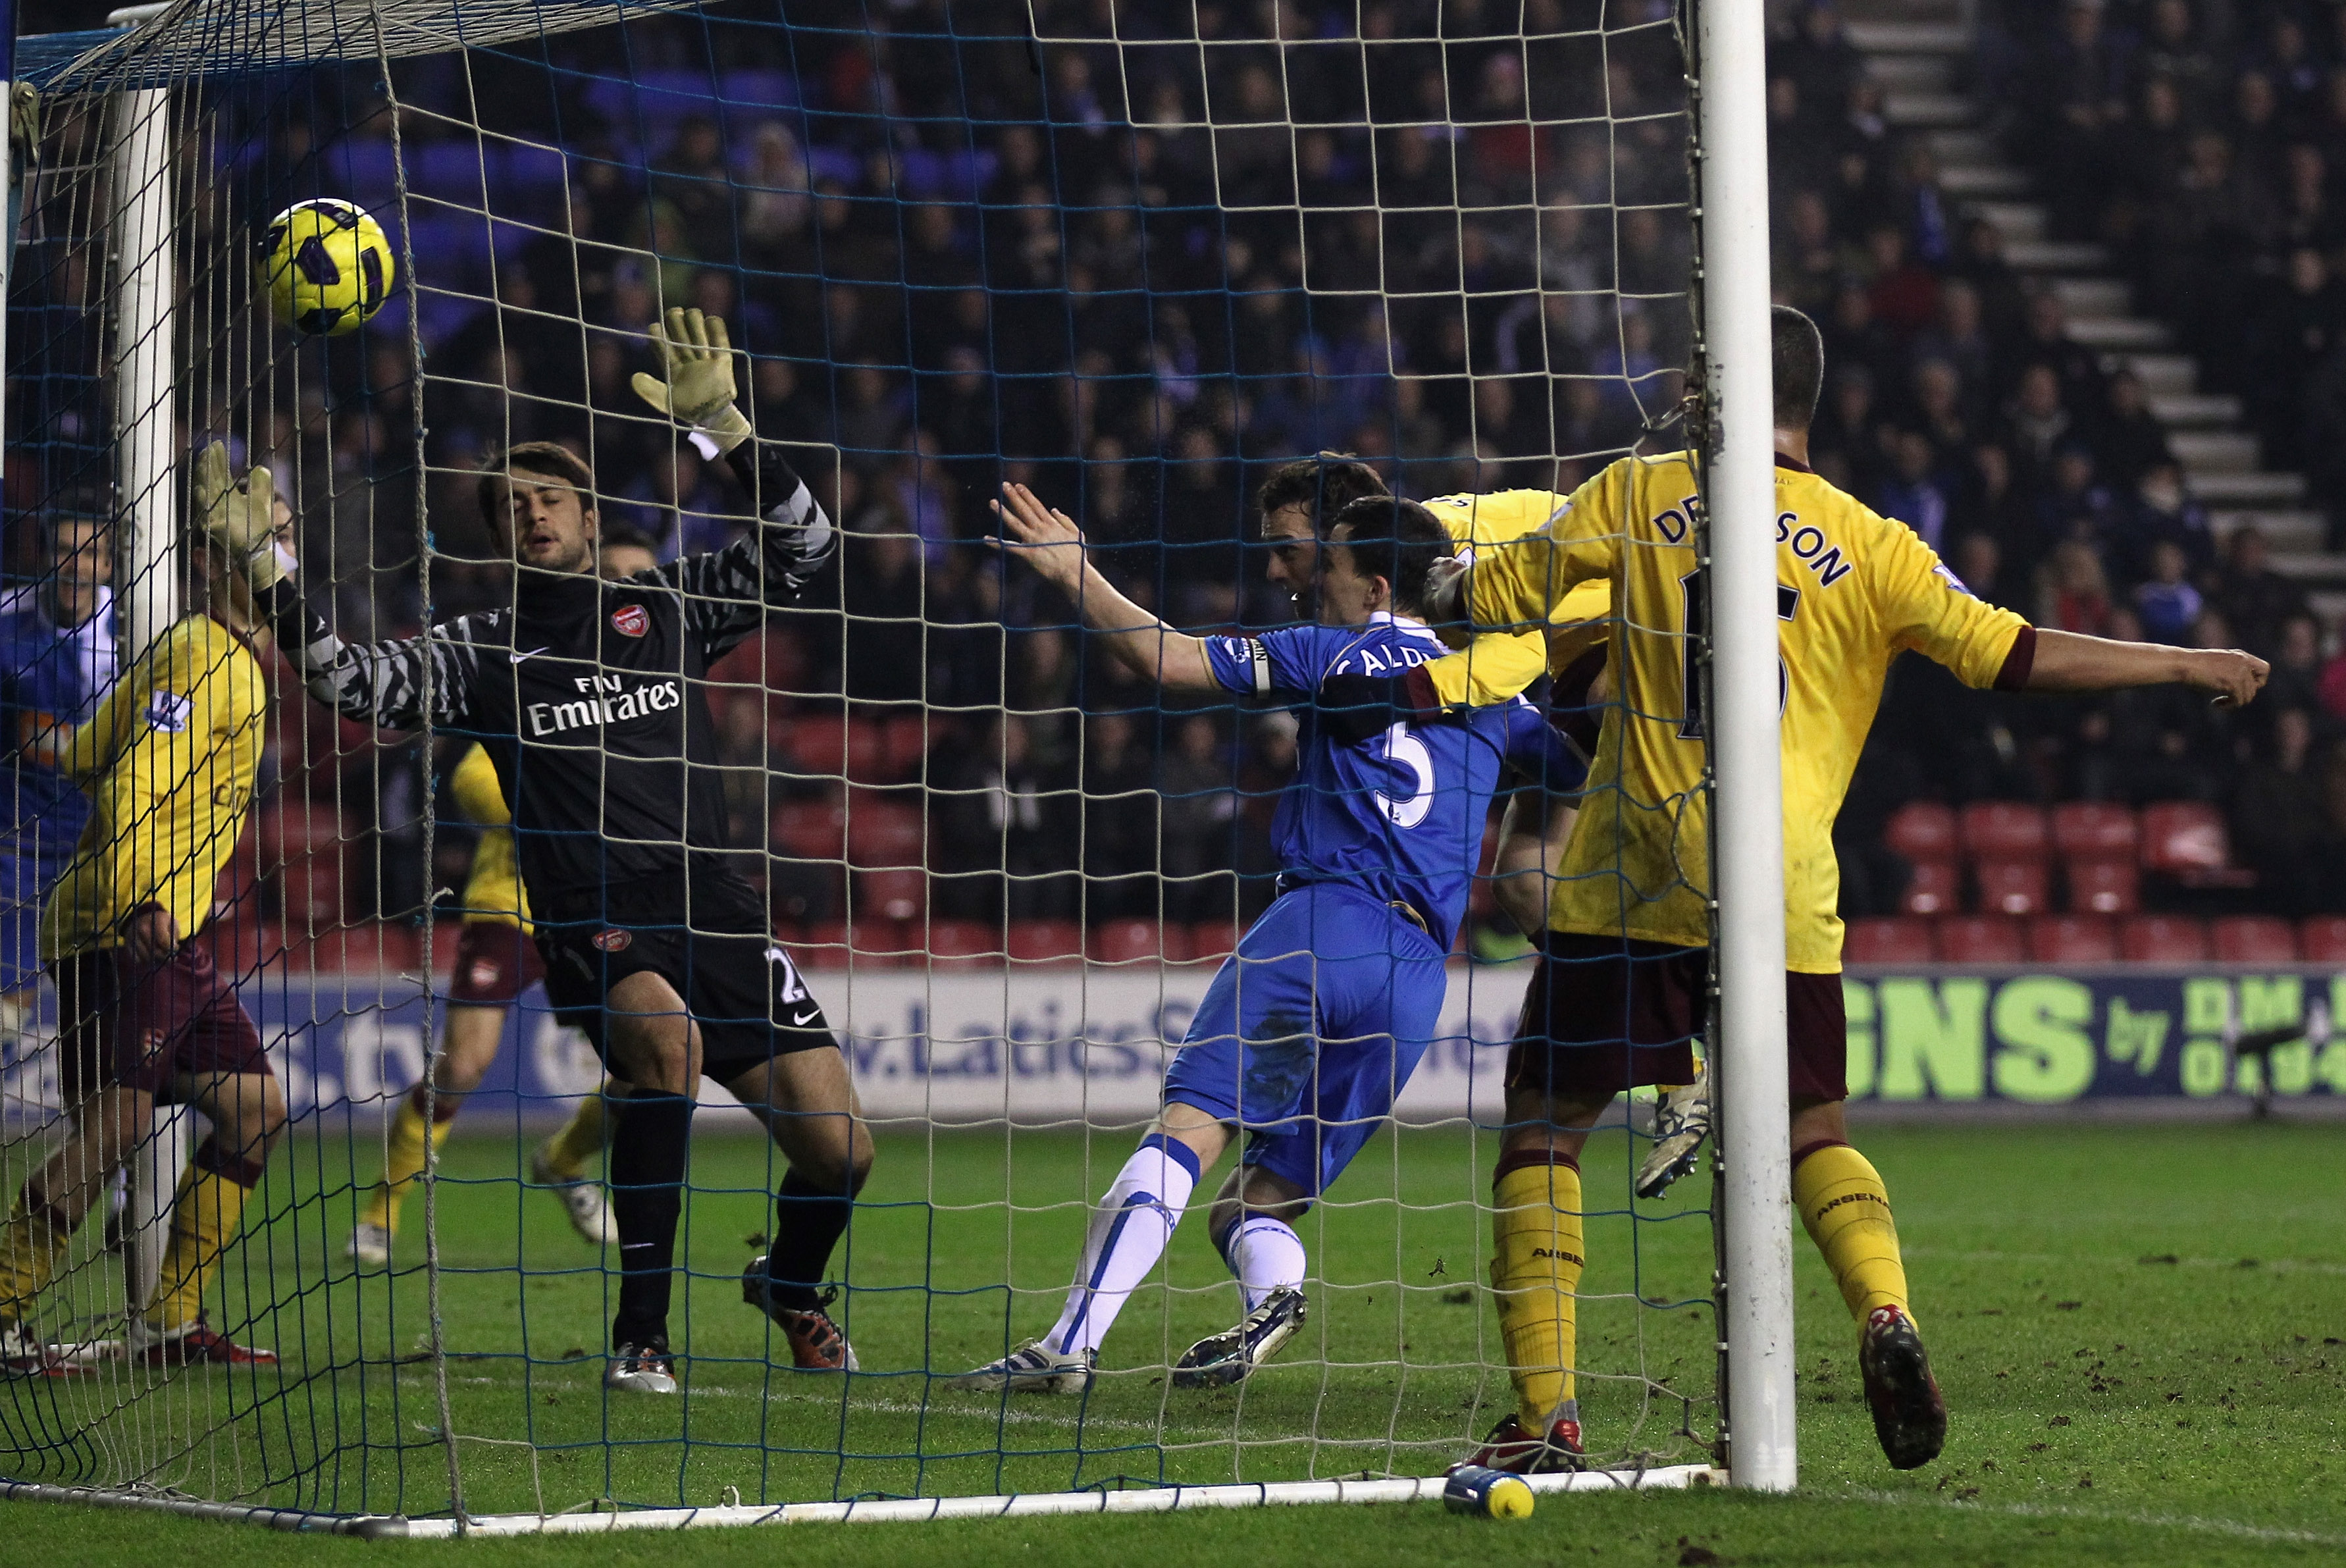 WIGAN, ENGLAND - DECEMBER 29:  Sebastien Squillaci of Arsenal scores an own goal to level the scores during the Barclays Premier League match between Wigan Athletic and Arsenal at DW Stadium on December 29, 2010 in Wigan, England.  (Photo by Alex Livesey/